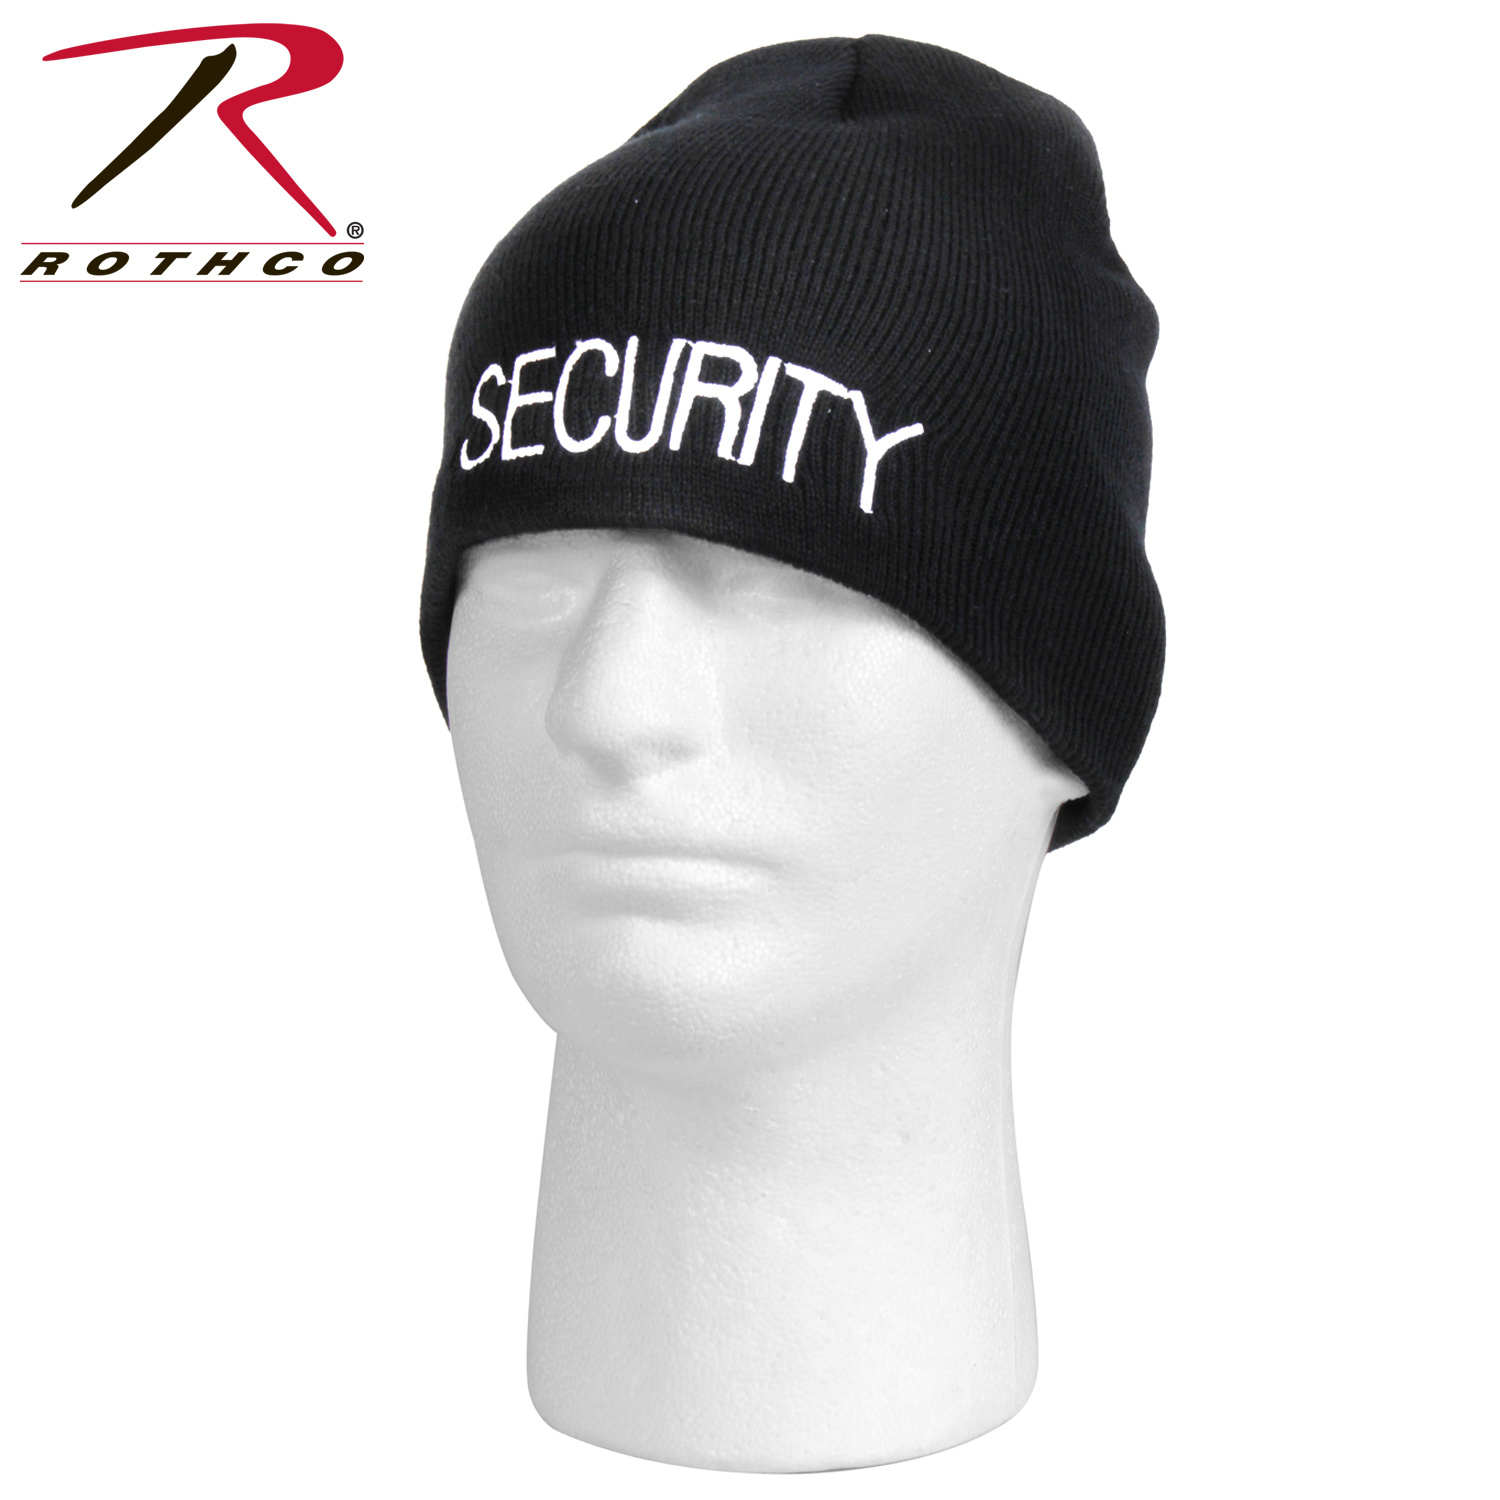 Rothco Security Touque